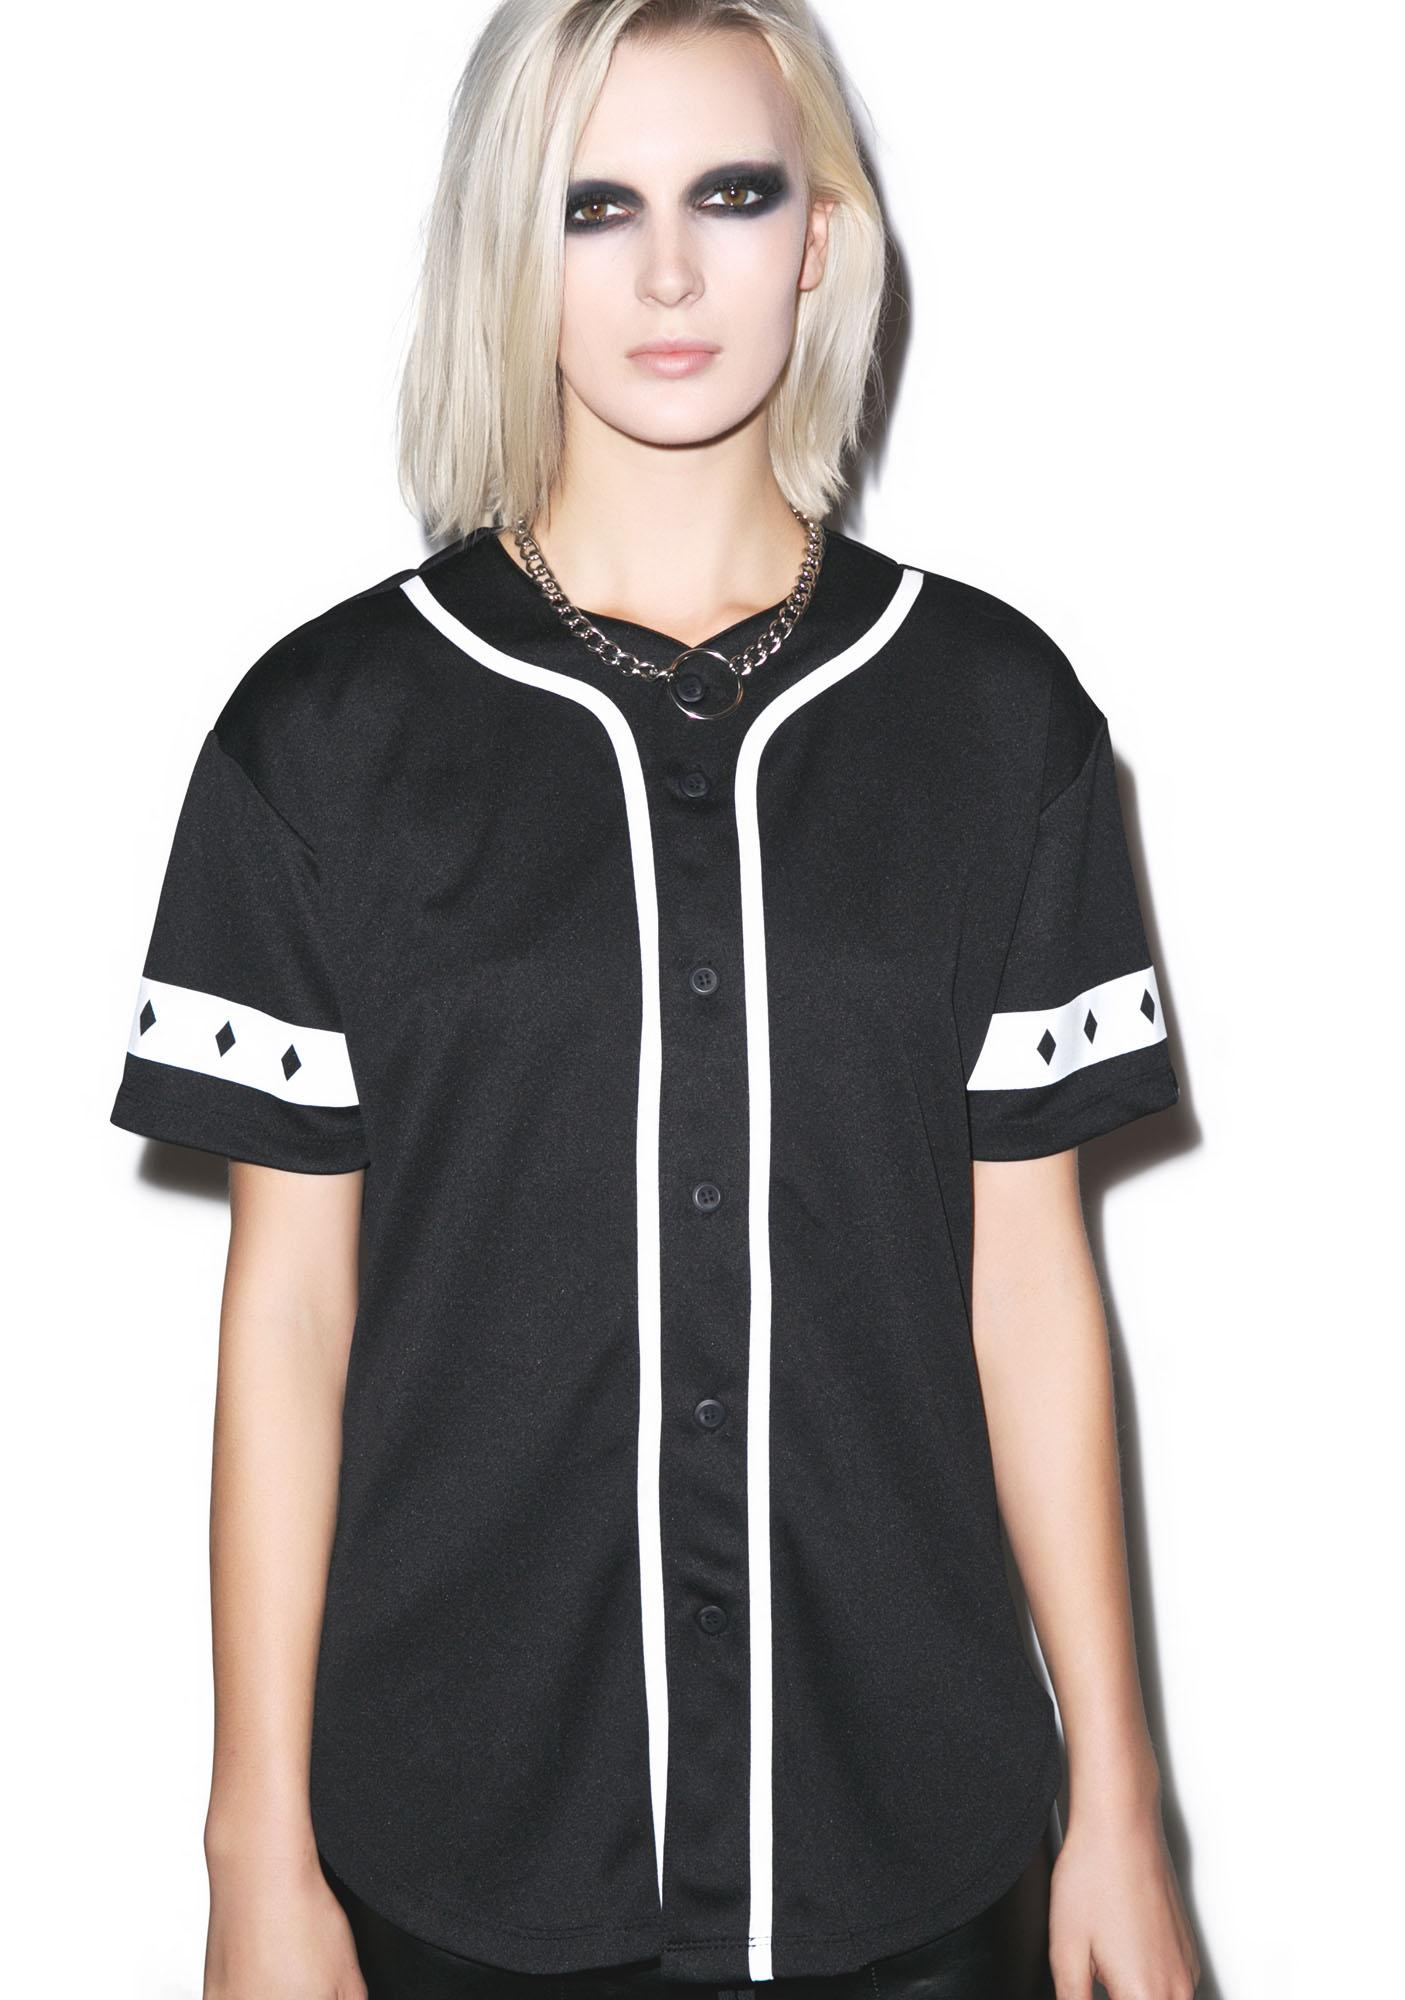 Strike Zone Baseball Jersey